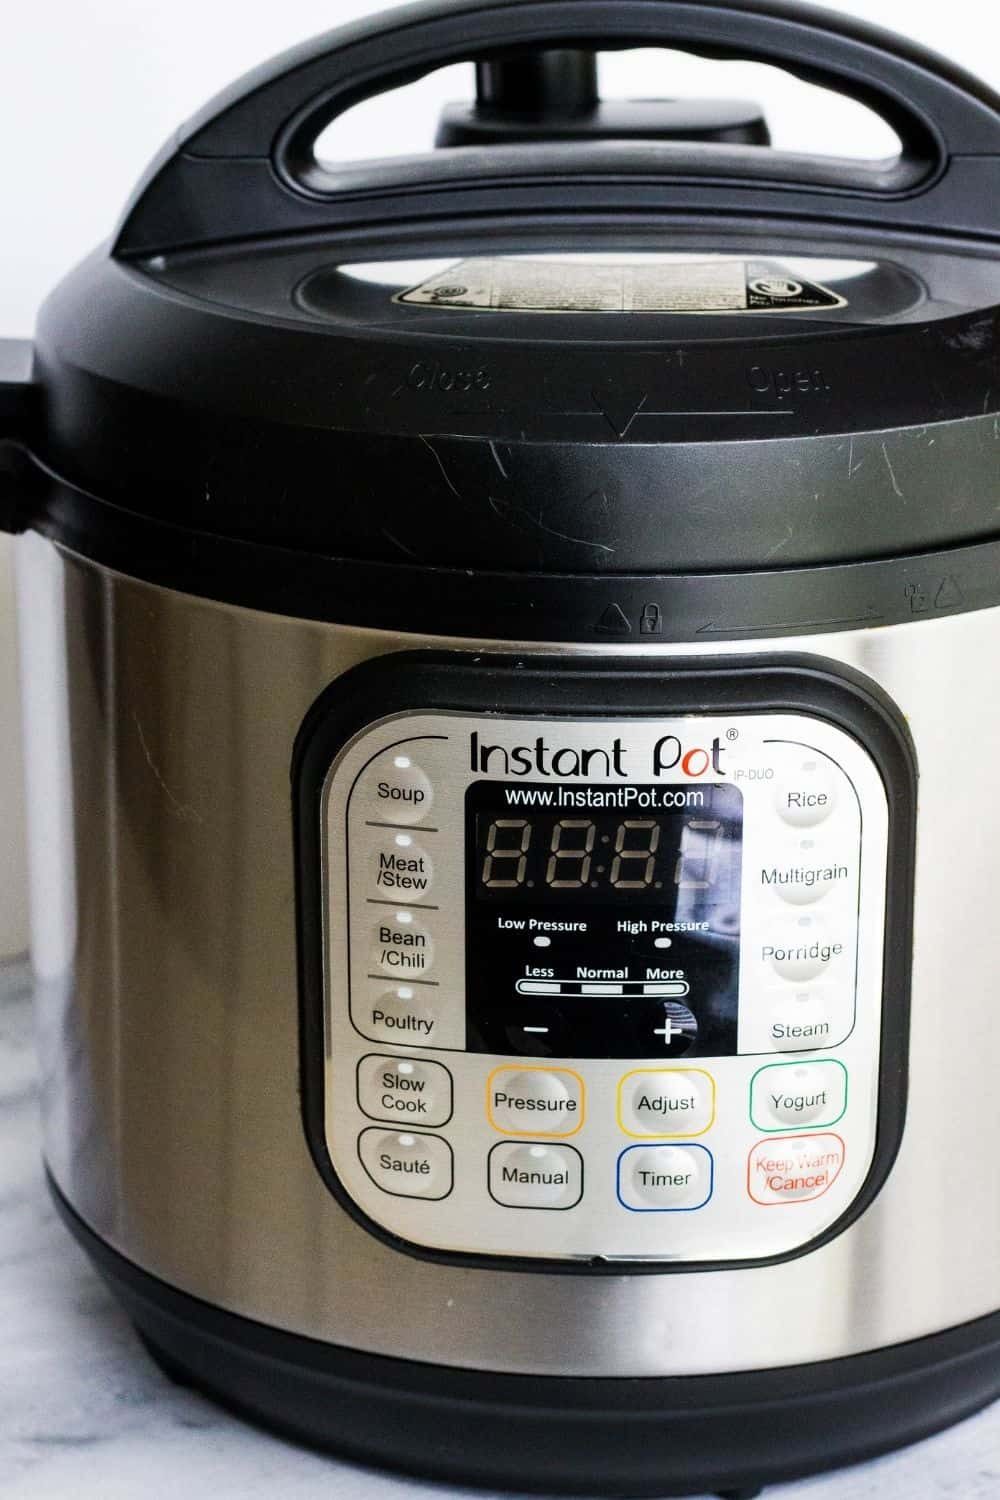 an Instant Pot DUO 60 on a marble kitchen surface